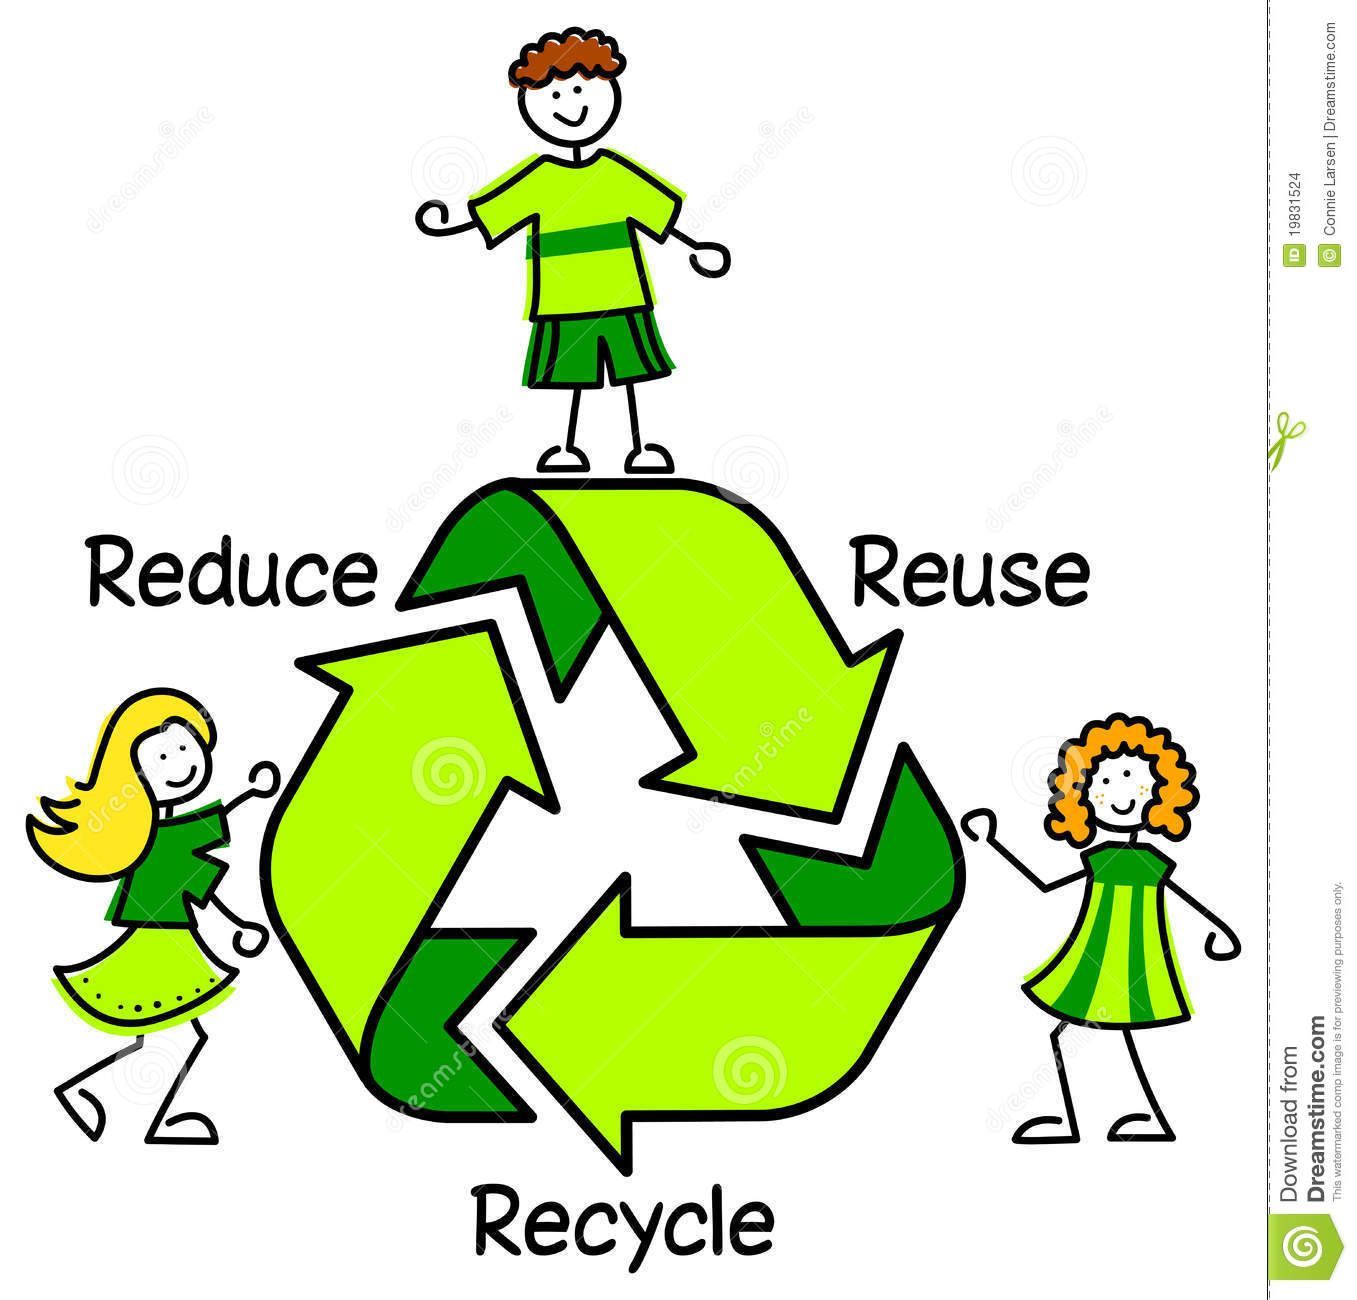 Green Recycle Kids/eps Stock Images - Image: 19831524 | We are ...